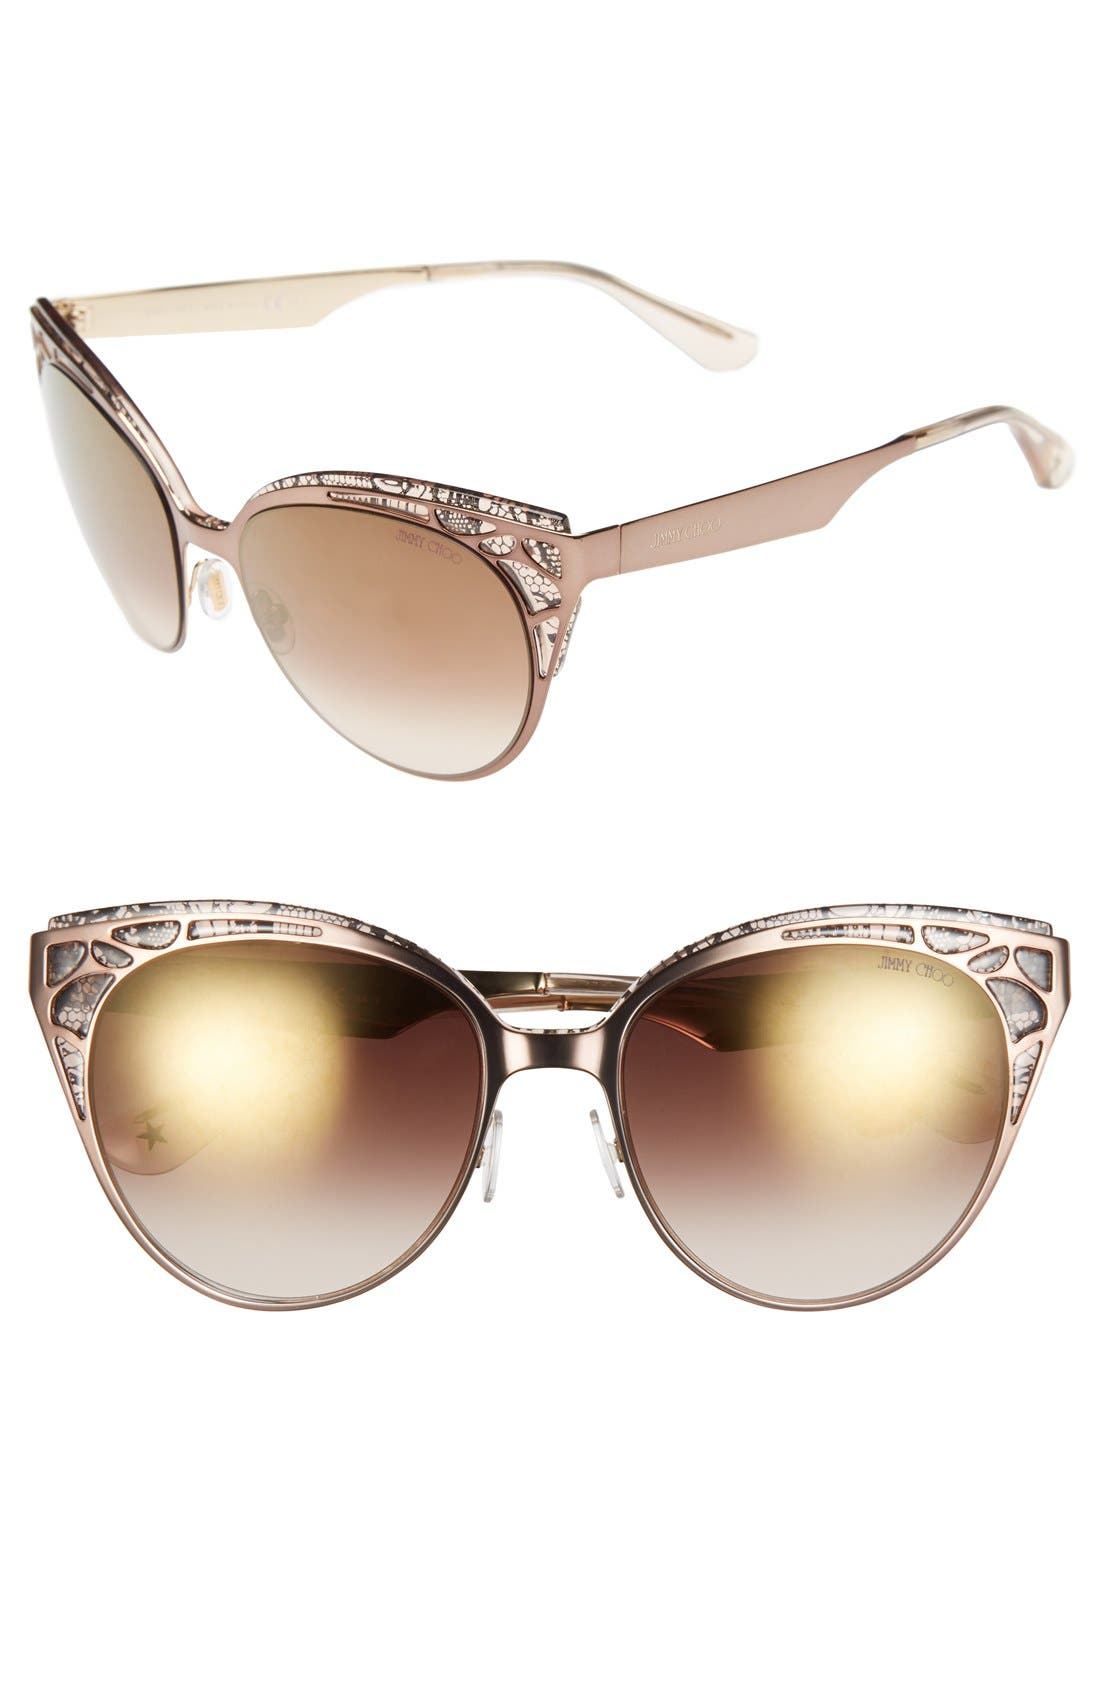 Jimmy Choo 'Estelle' Metal Cat Eye Crystal Lace 55mm Sunglasses